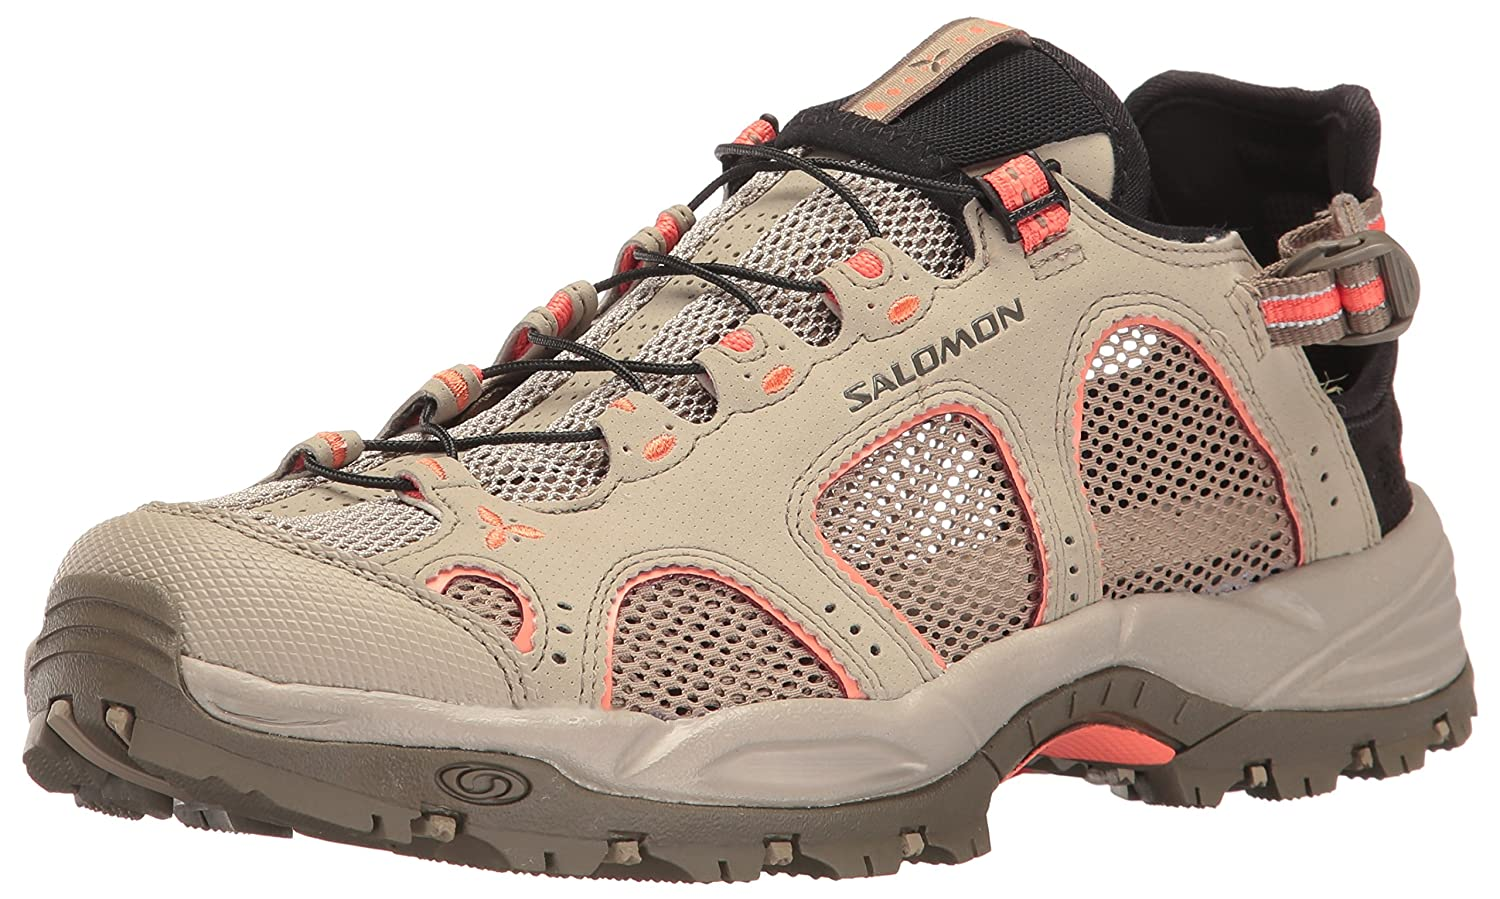 Salomon Women's Techamphibian 3 W Trail Running Shoe B01HD2REDI 7.5 B(M) US|Vintage Kaki